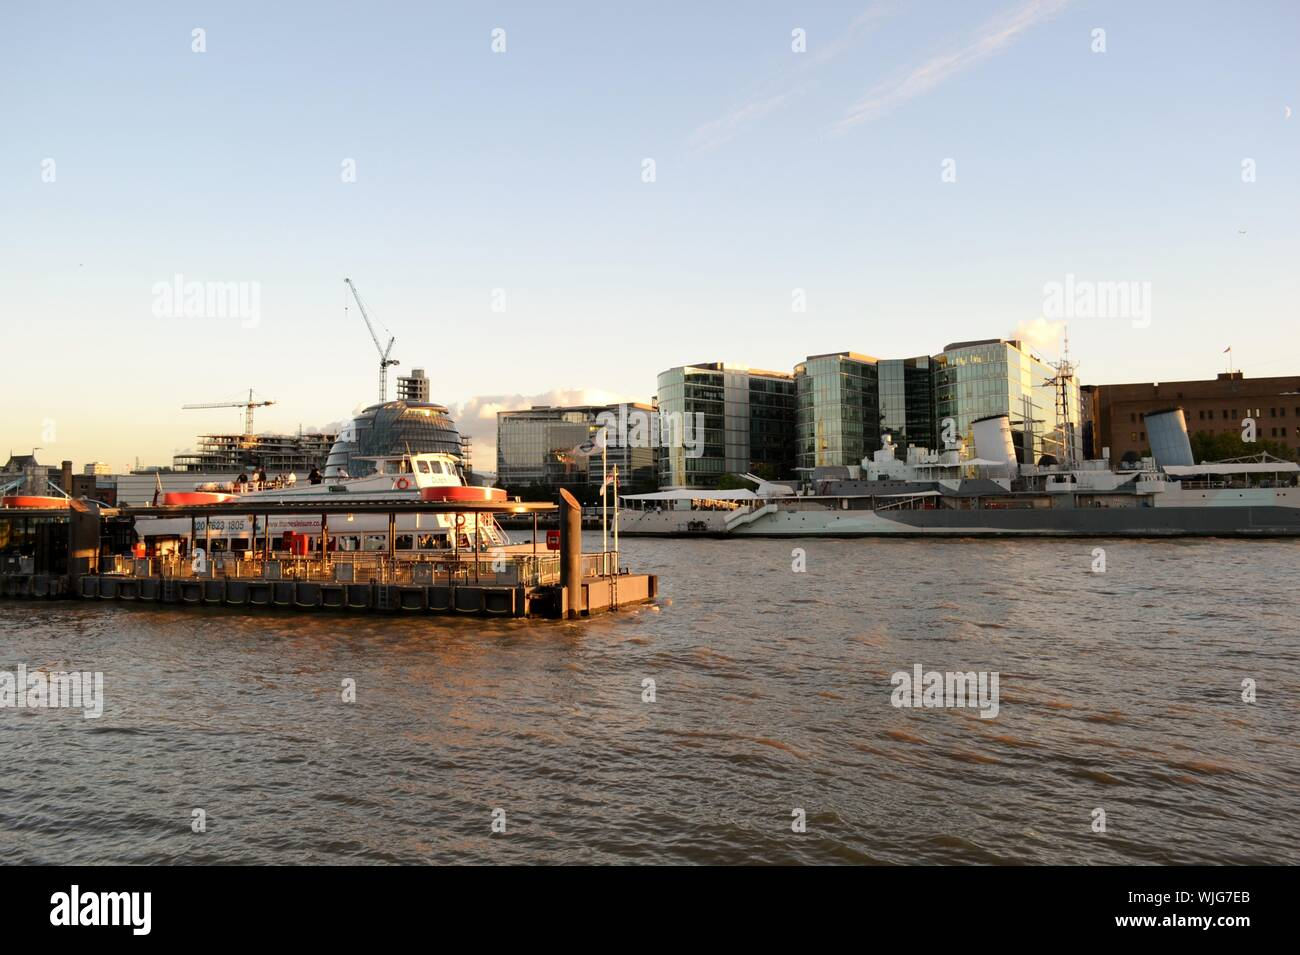 London/UK - August 31, 2014: Panoramic view to the embankment on the  Thames river, the cityscape and HMS Belfast at sunset. Stock Photo